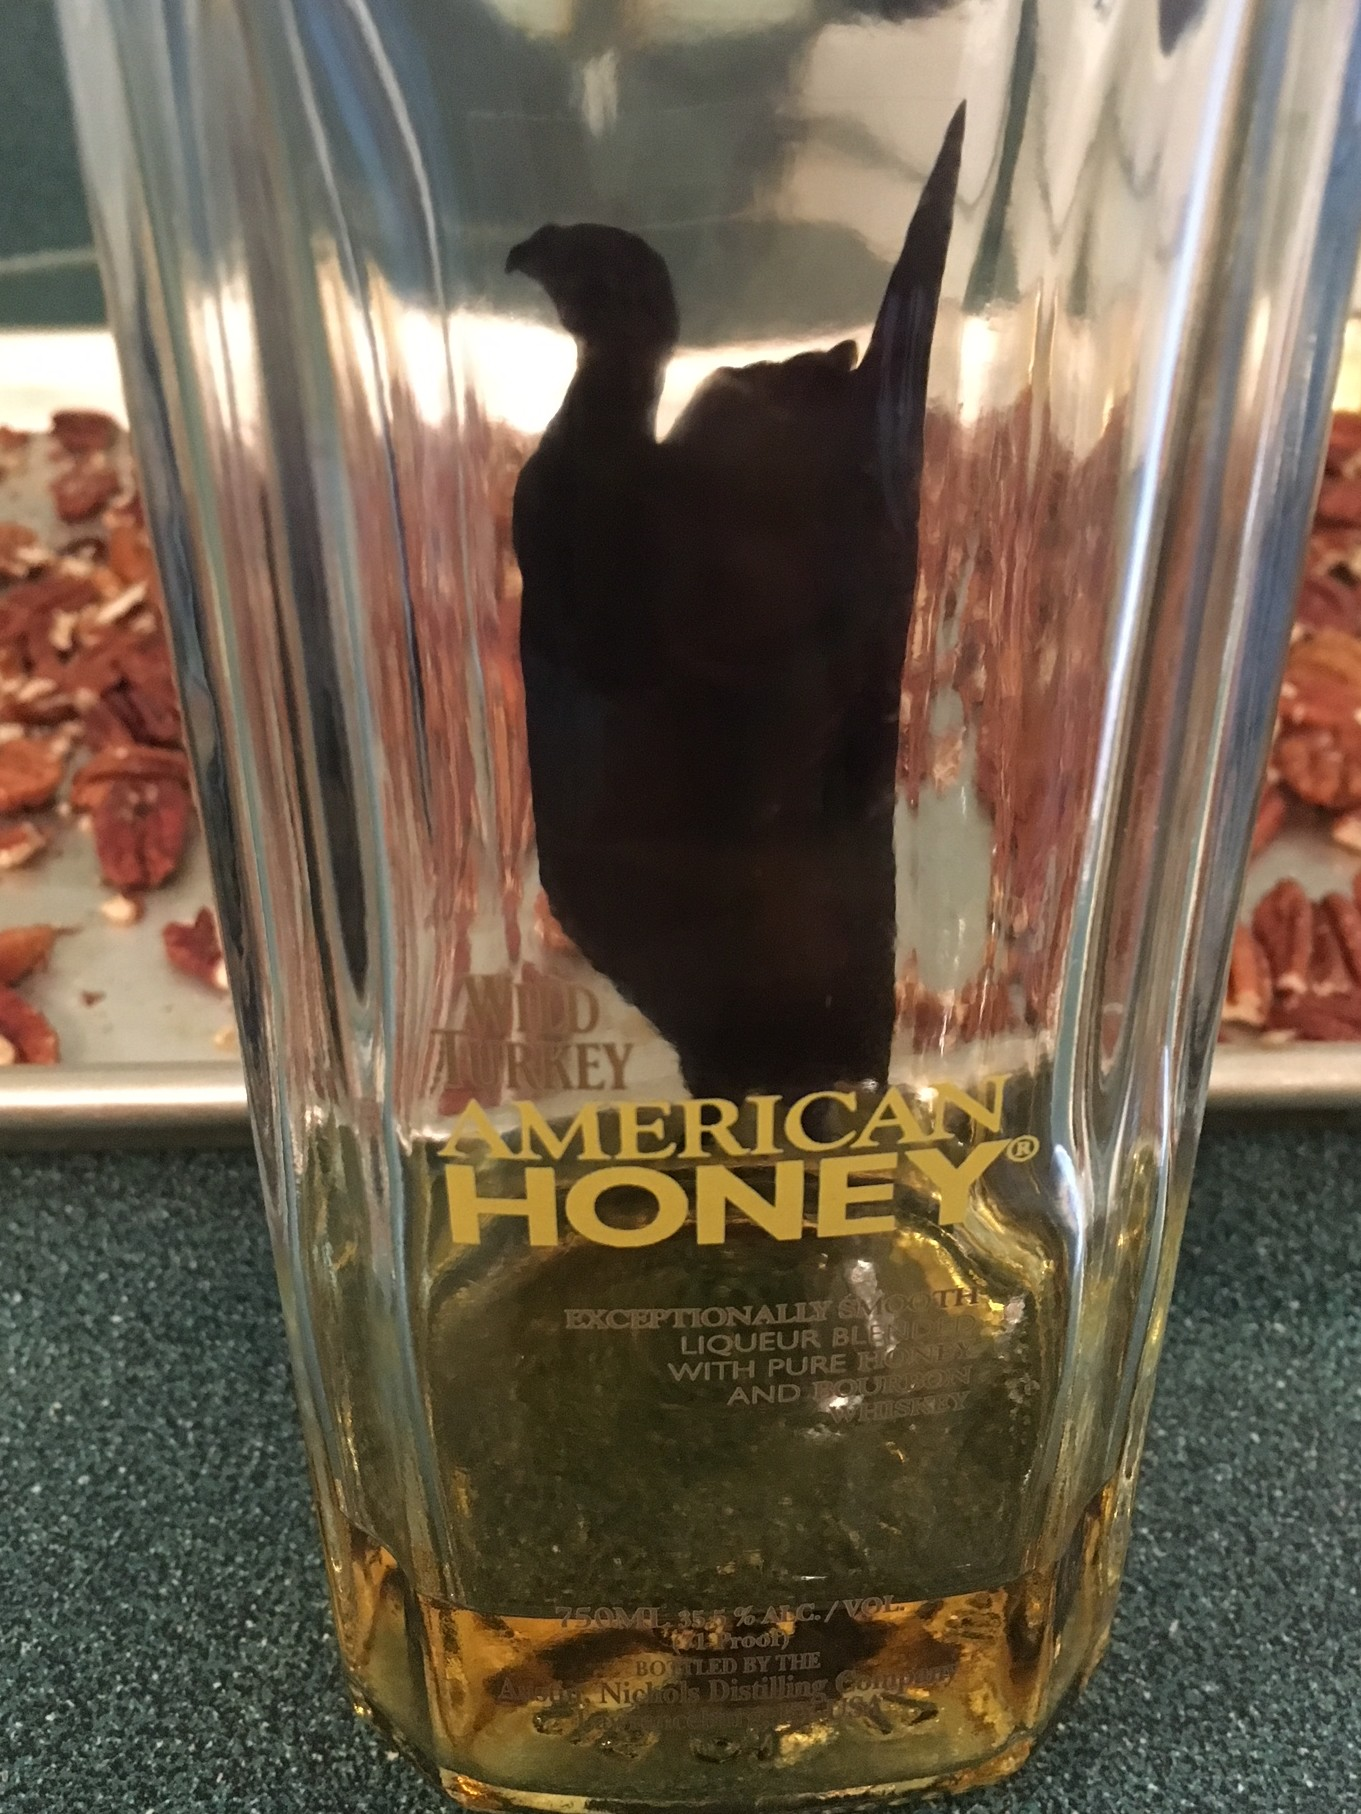 Wild Turkey American Honey bottle